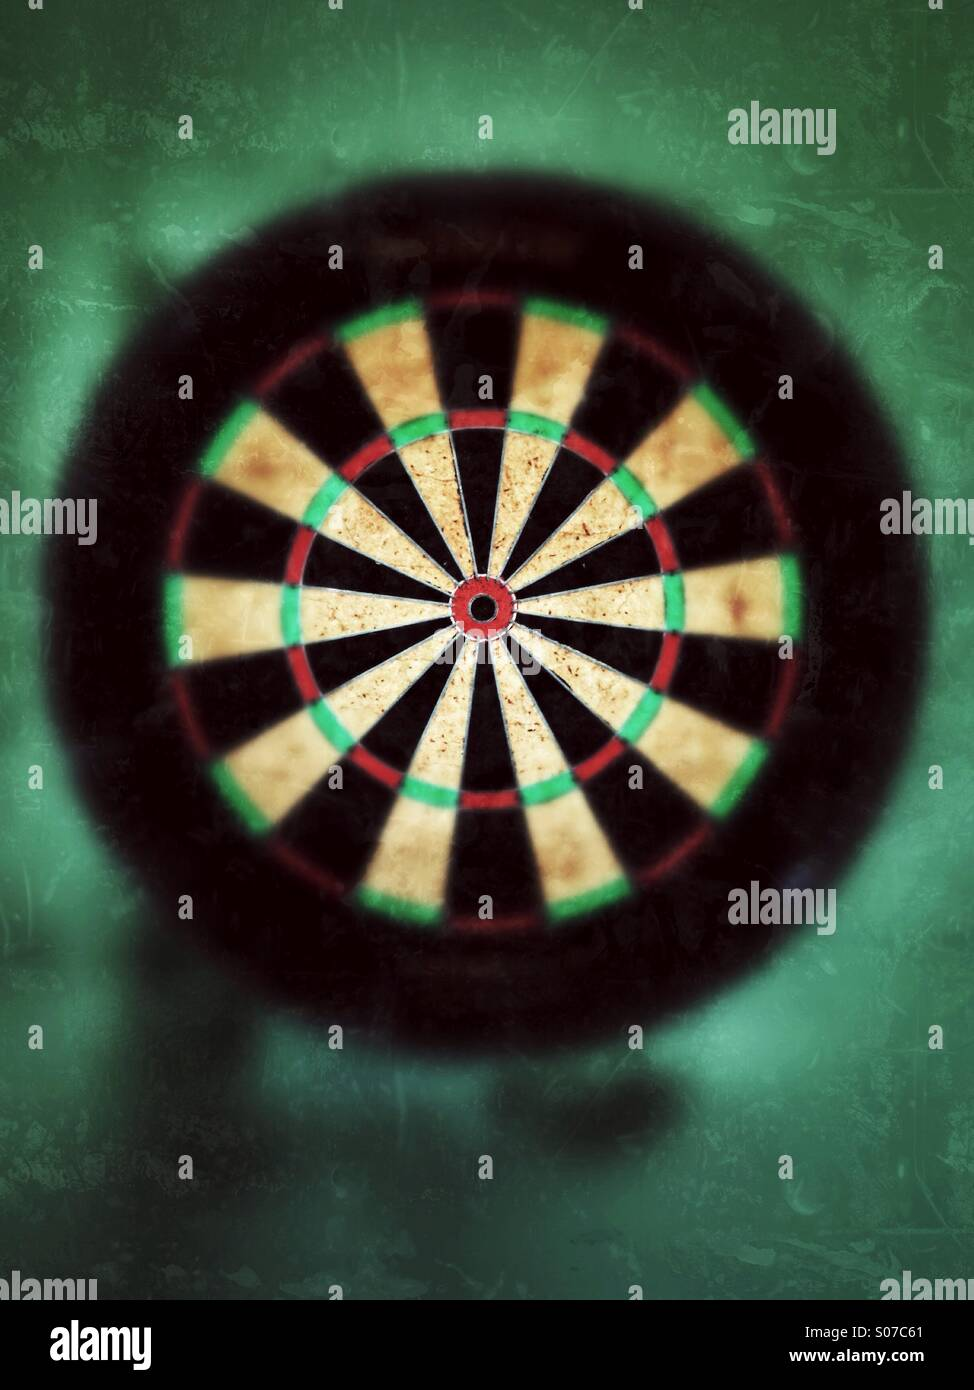 Dart target in a pub. - Stock Image